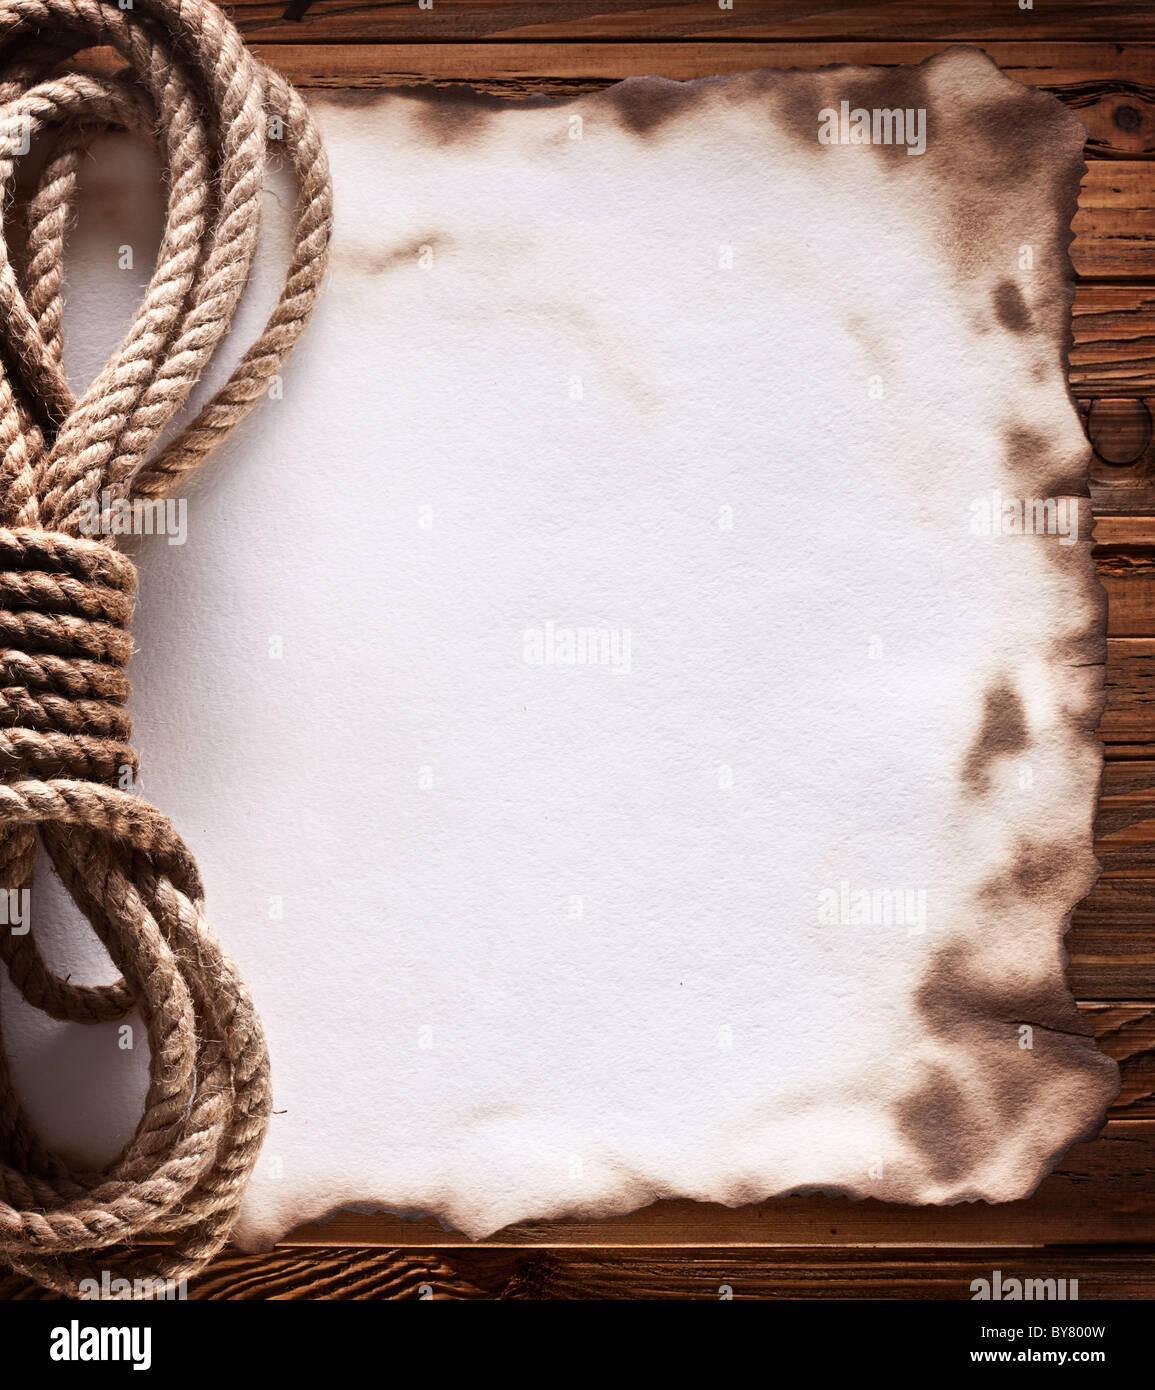 Image of old paper on wood background. - Stock Image